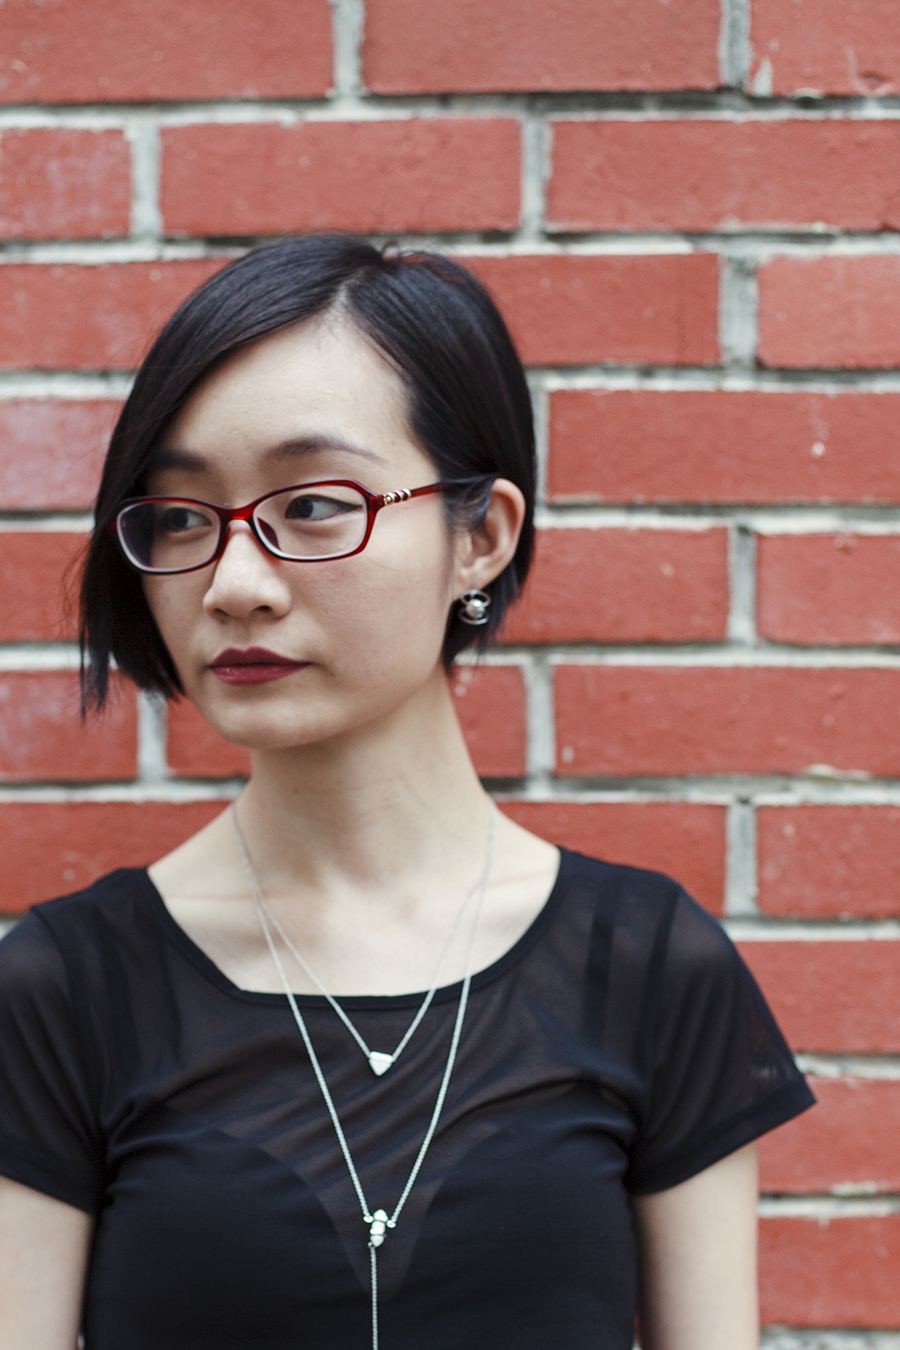 Brick wall ootd: ALDO Cocia Necklace, WholesaleBuying mesh top, Uniqlo bra, Firmoo red glasses.